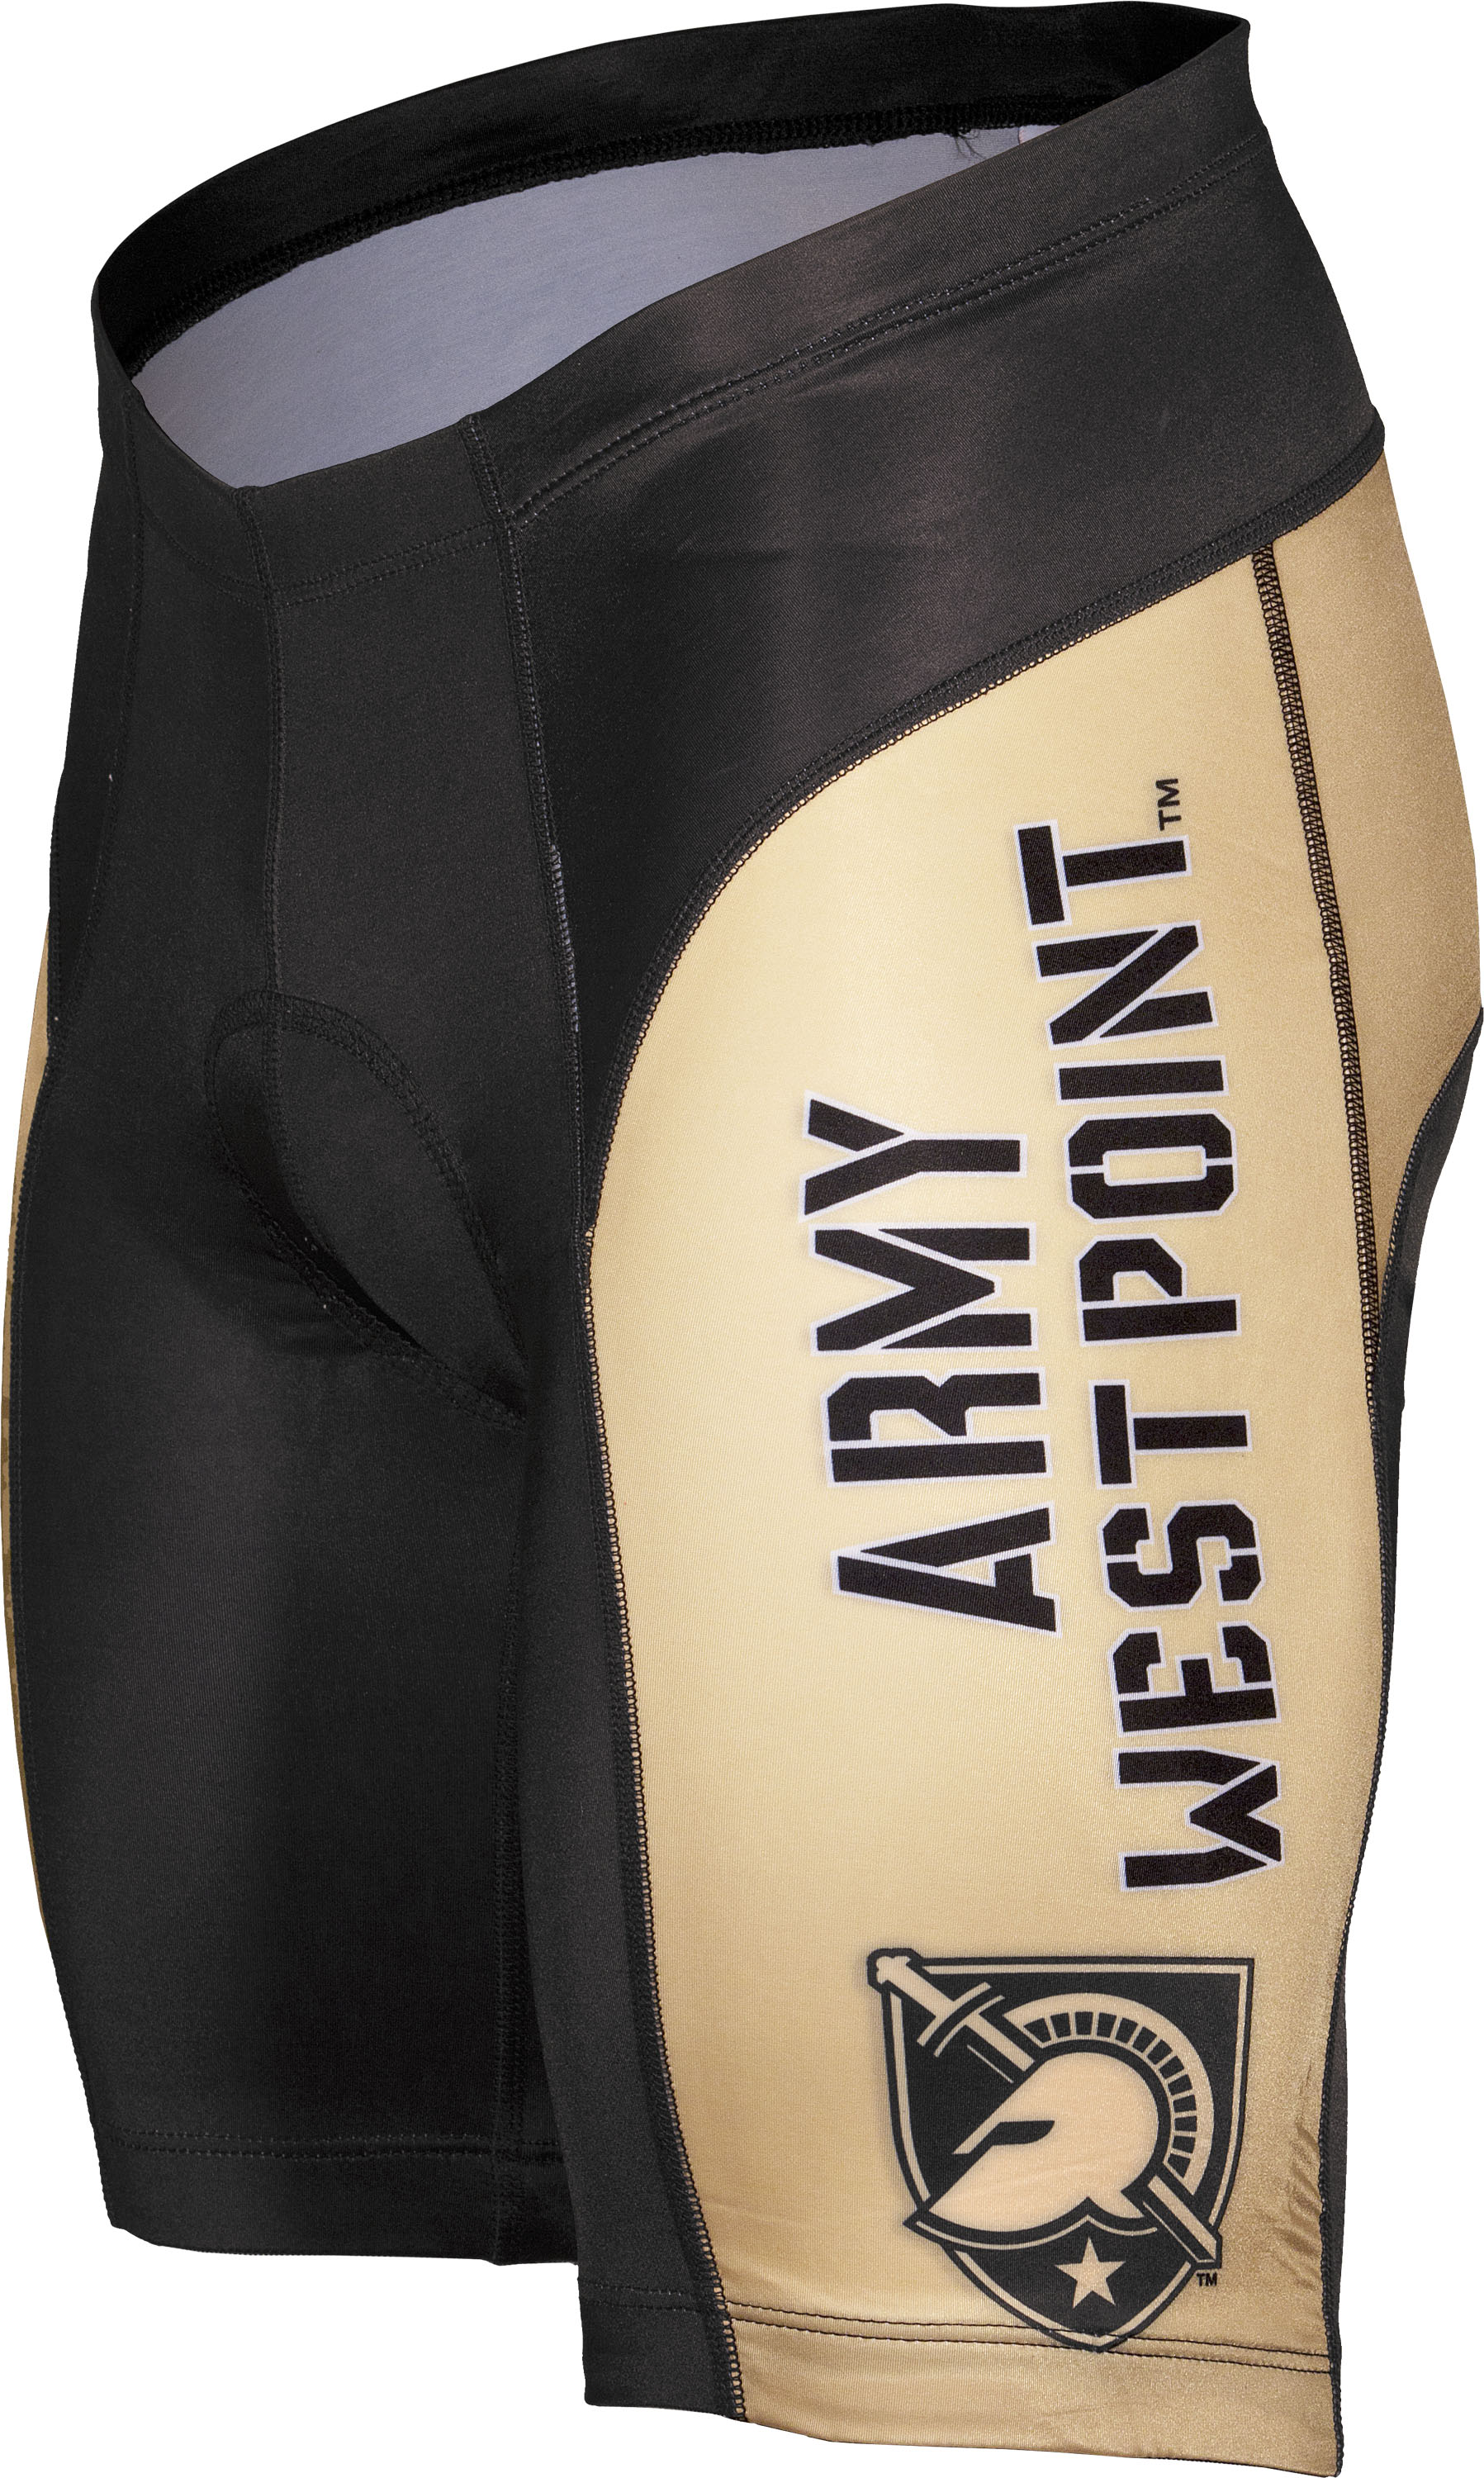 West Point Military Academy (ARMY) Cycling Shorts